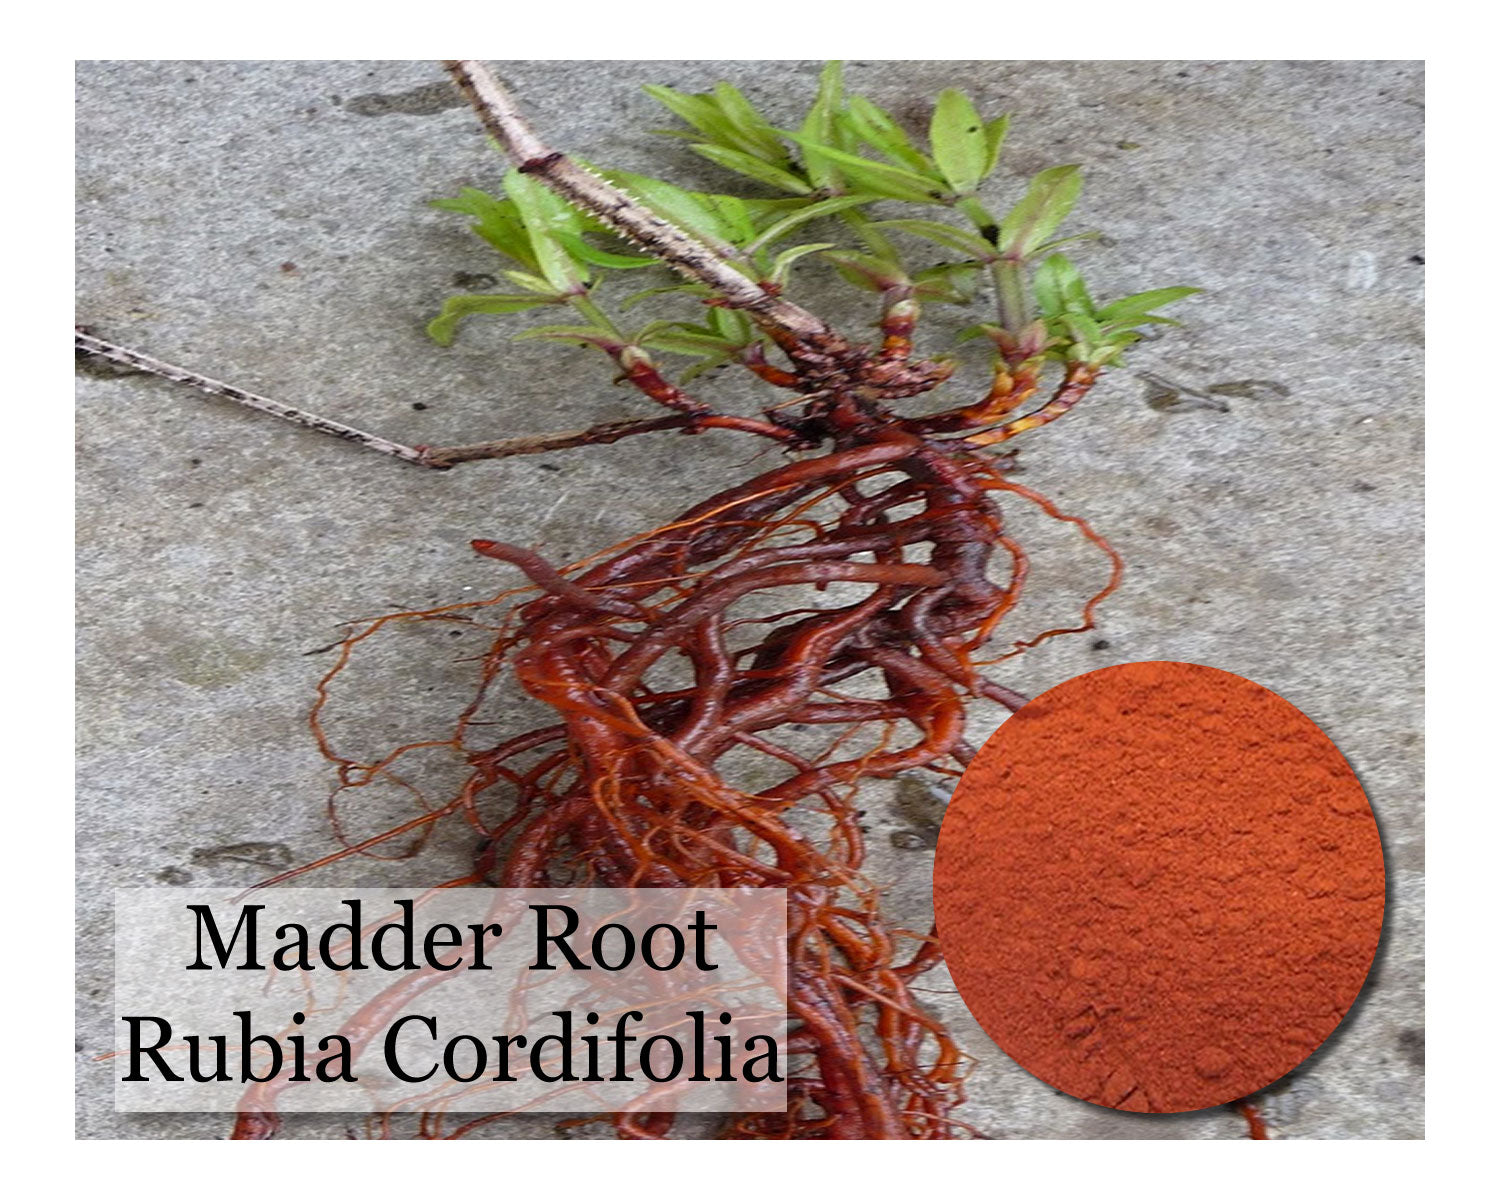 Madder - Rubia Cordifolia - Powder - 16 oz - Wholesale